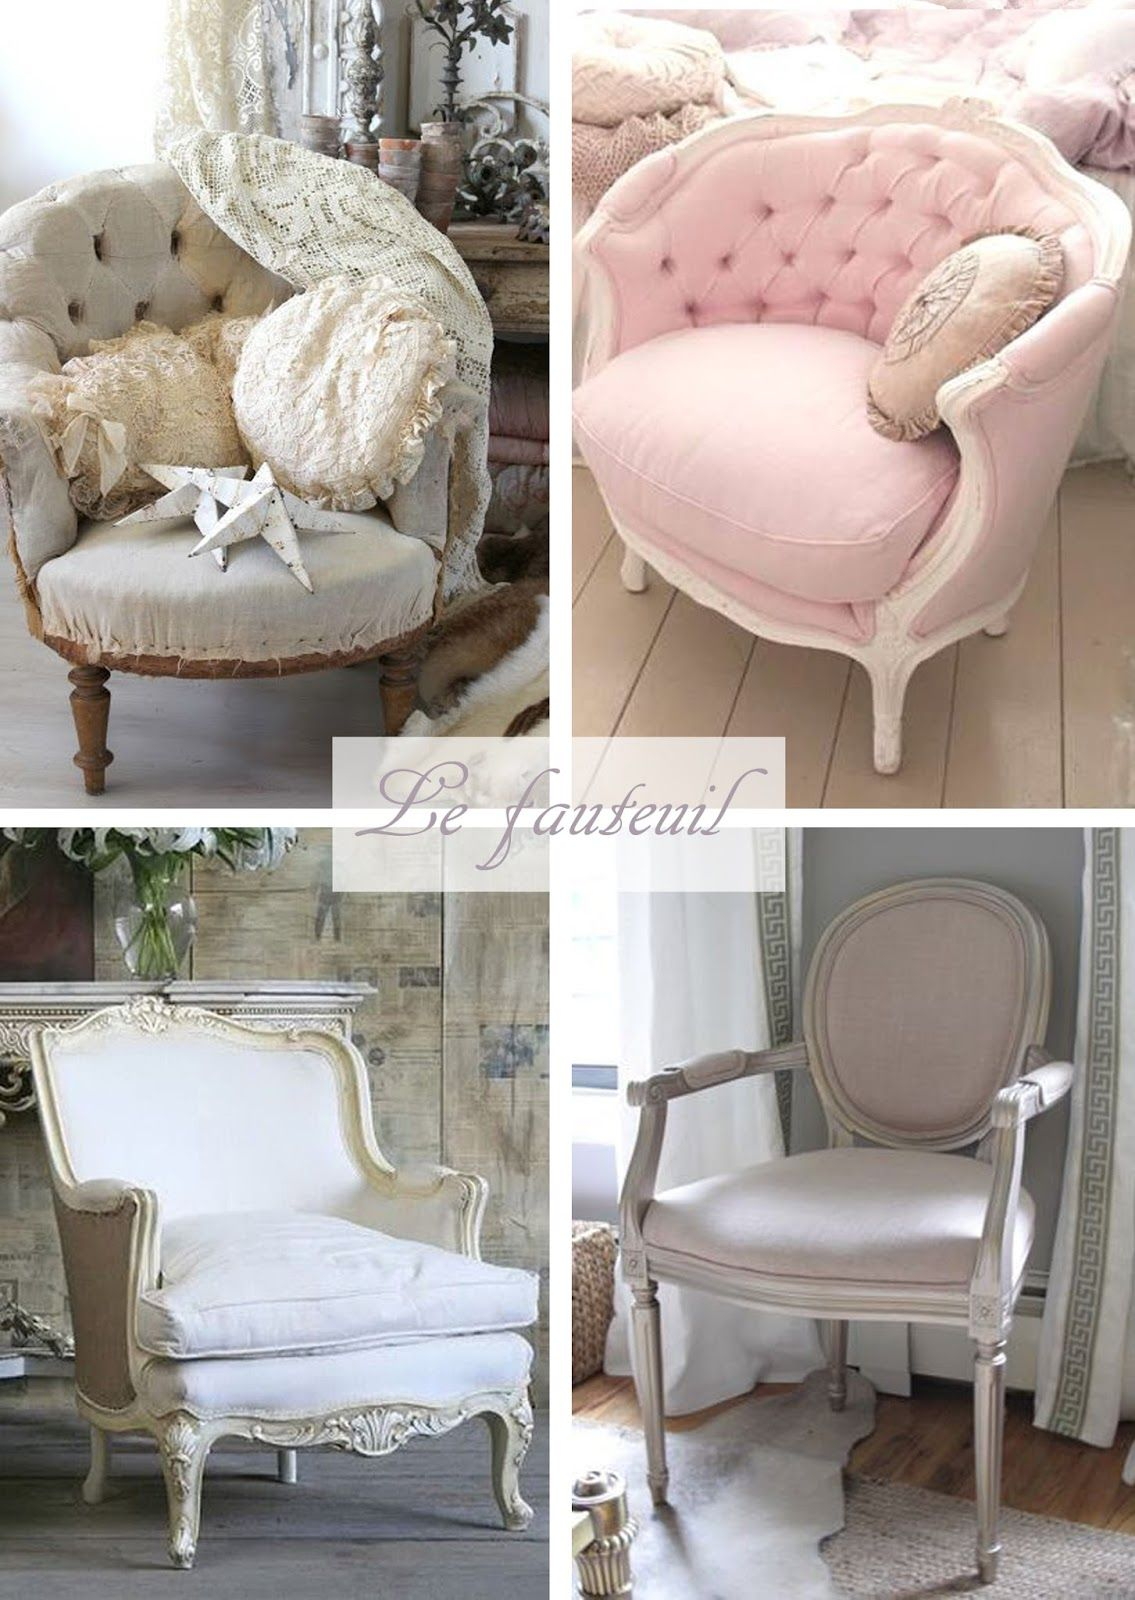 Fauteuil Shabby Chic Mcd Inspiration Pour Une Chambre Shabby Chic Decorate Muebles